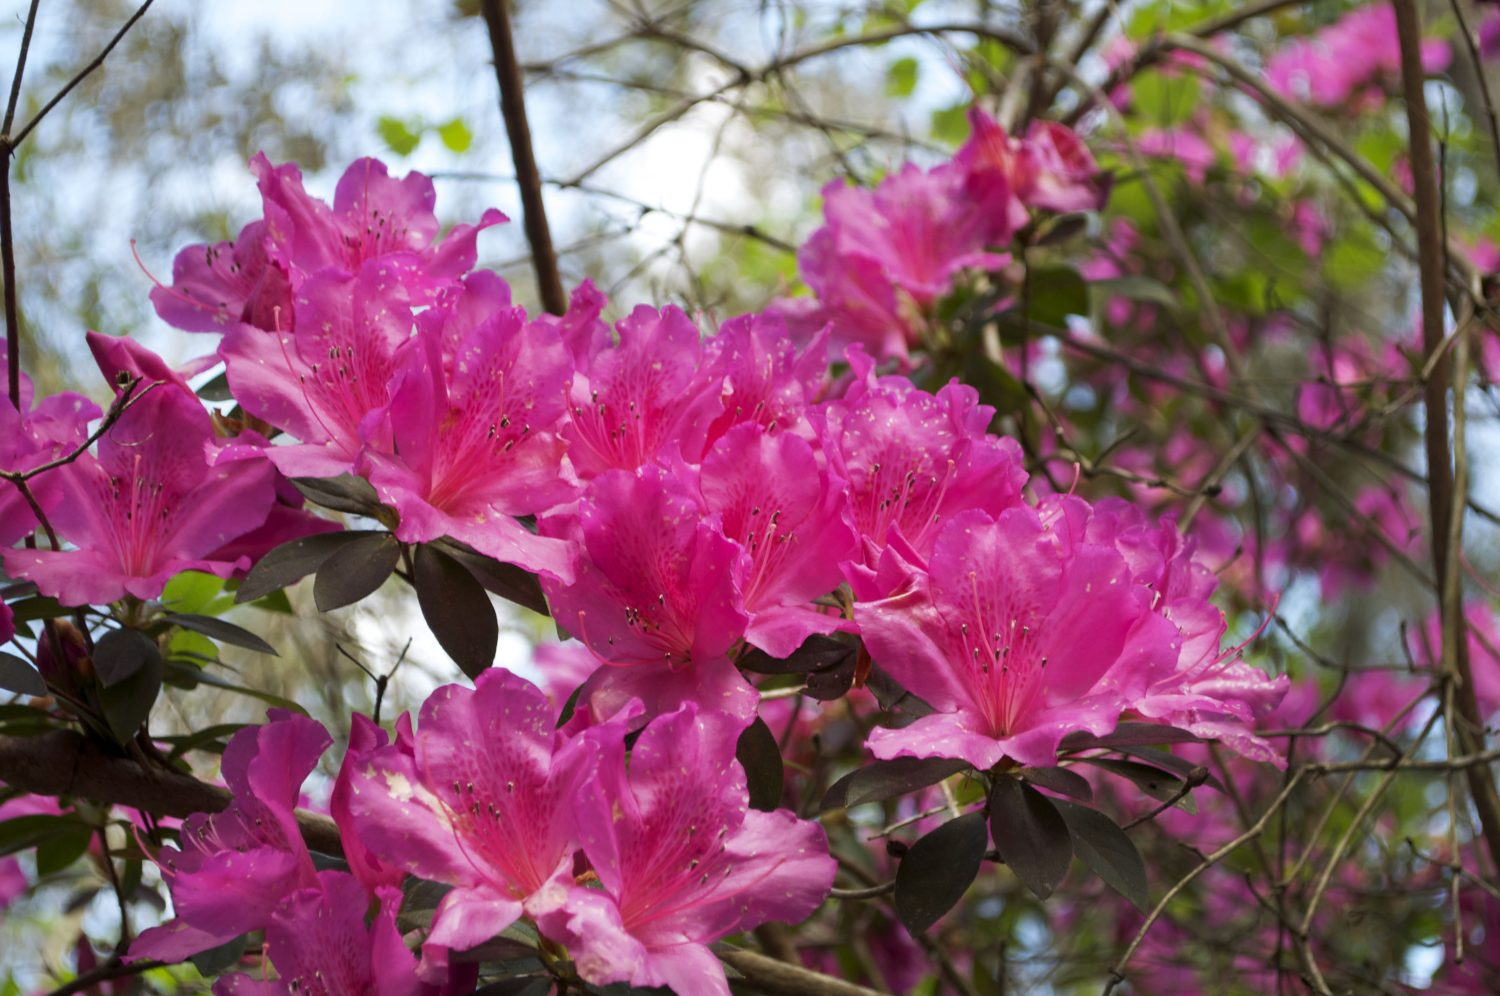 Tall azalea bushes line the trails troughout the ravine. The color of North American azaleas species range from white to purple, pink, red, organge or yellow. (Photo by Aubrey Stolzenberg)